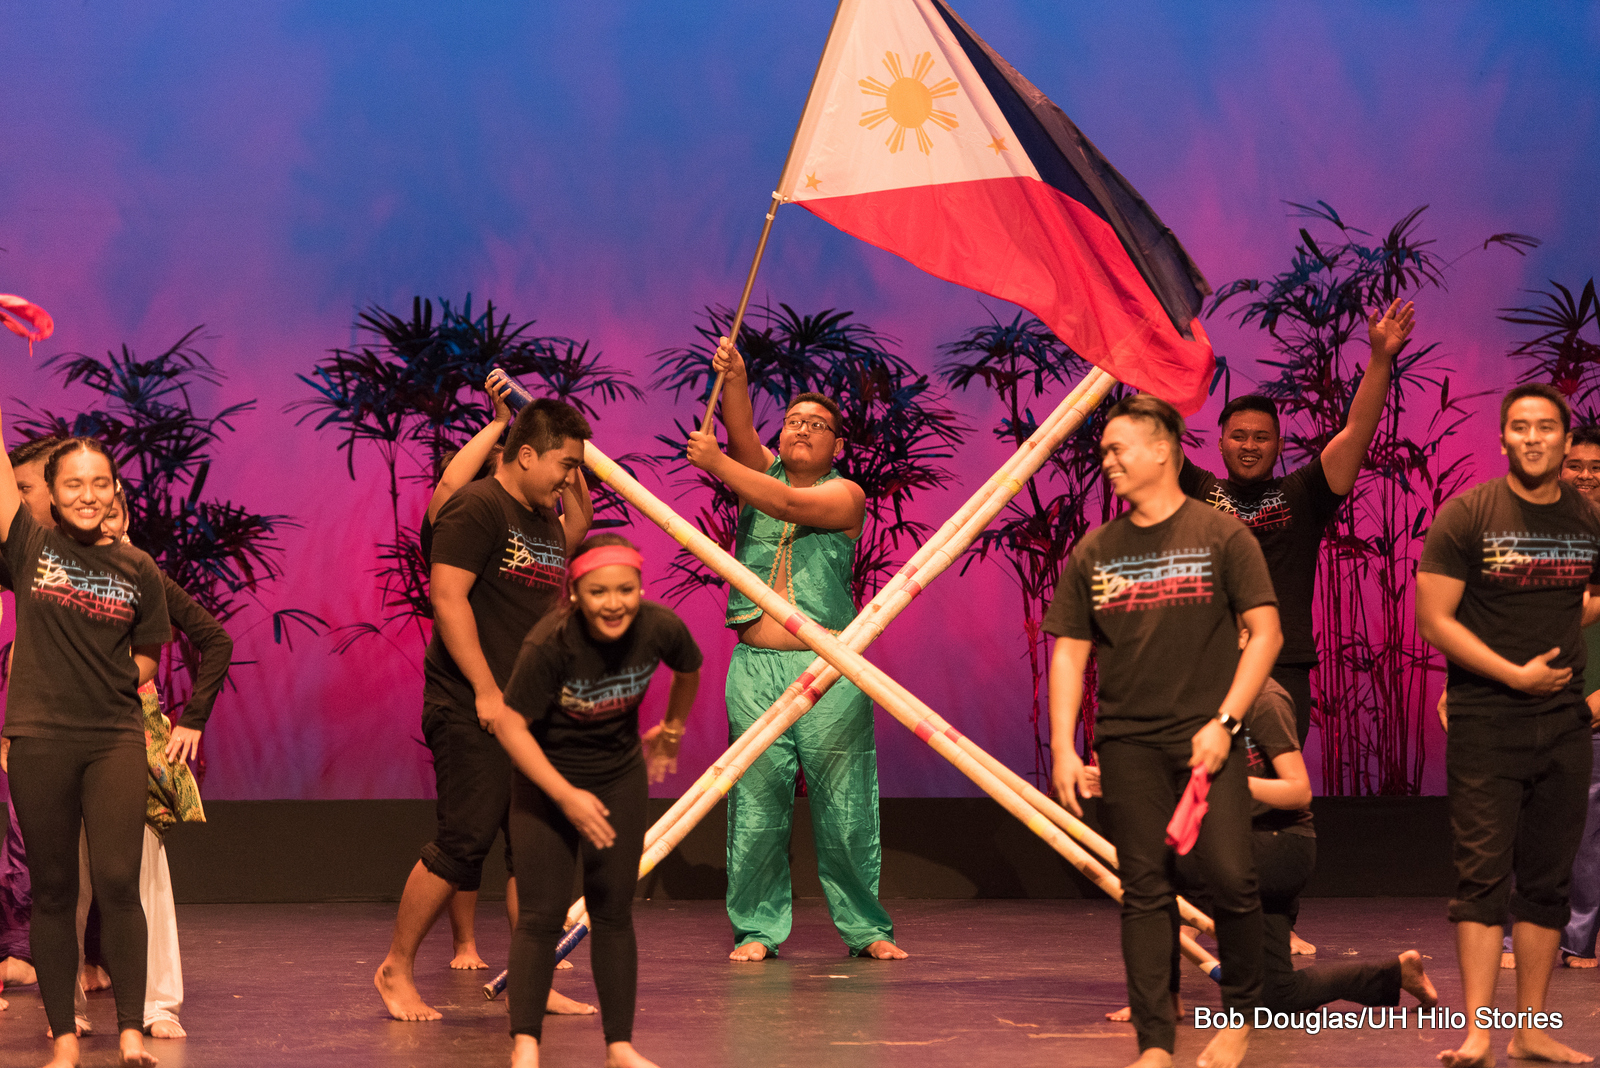 Group with male holding up Philippine flag. Two men holding crossed bamboo. Dancers are in black. Lighting is blue and pink.